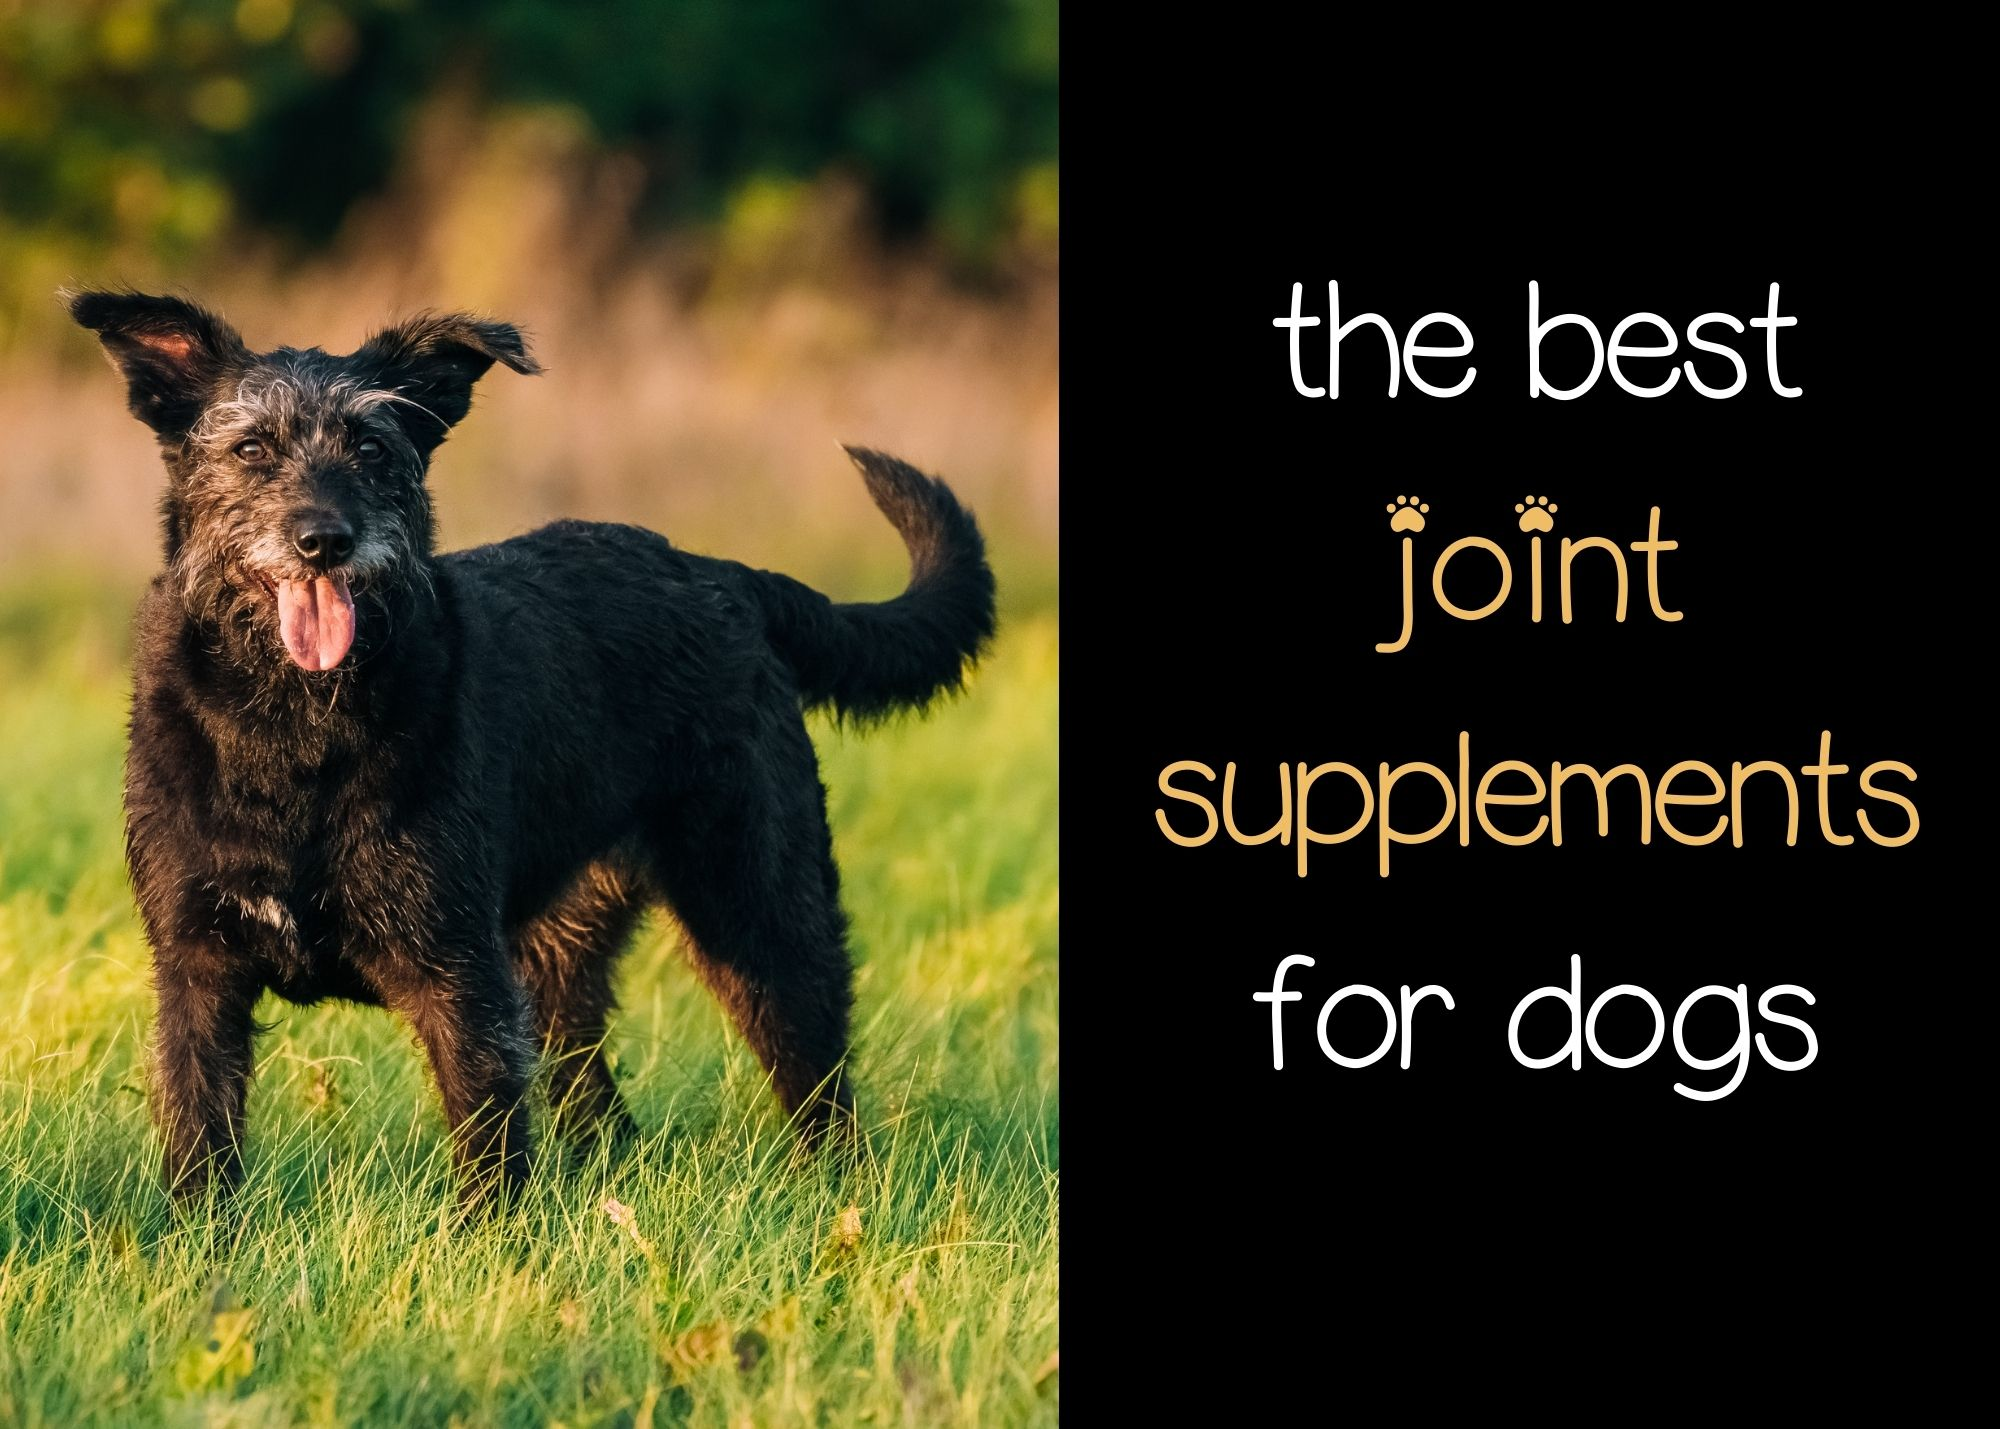 the best joint supplements for dogs